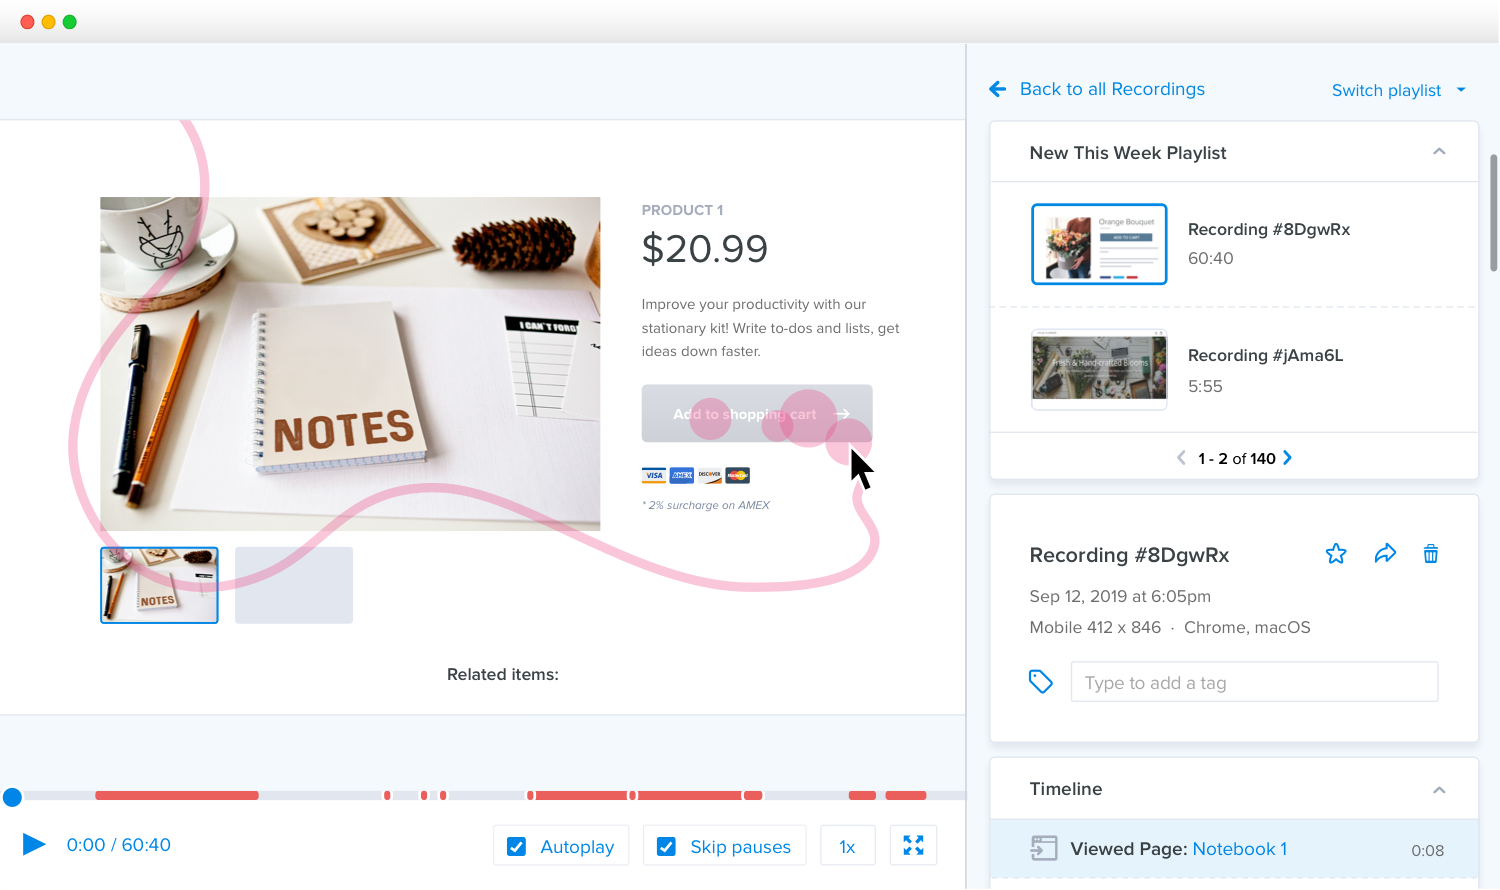 The Best 18 Online Marketing Tools for Small Businesses 16